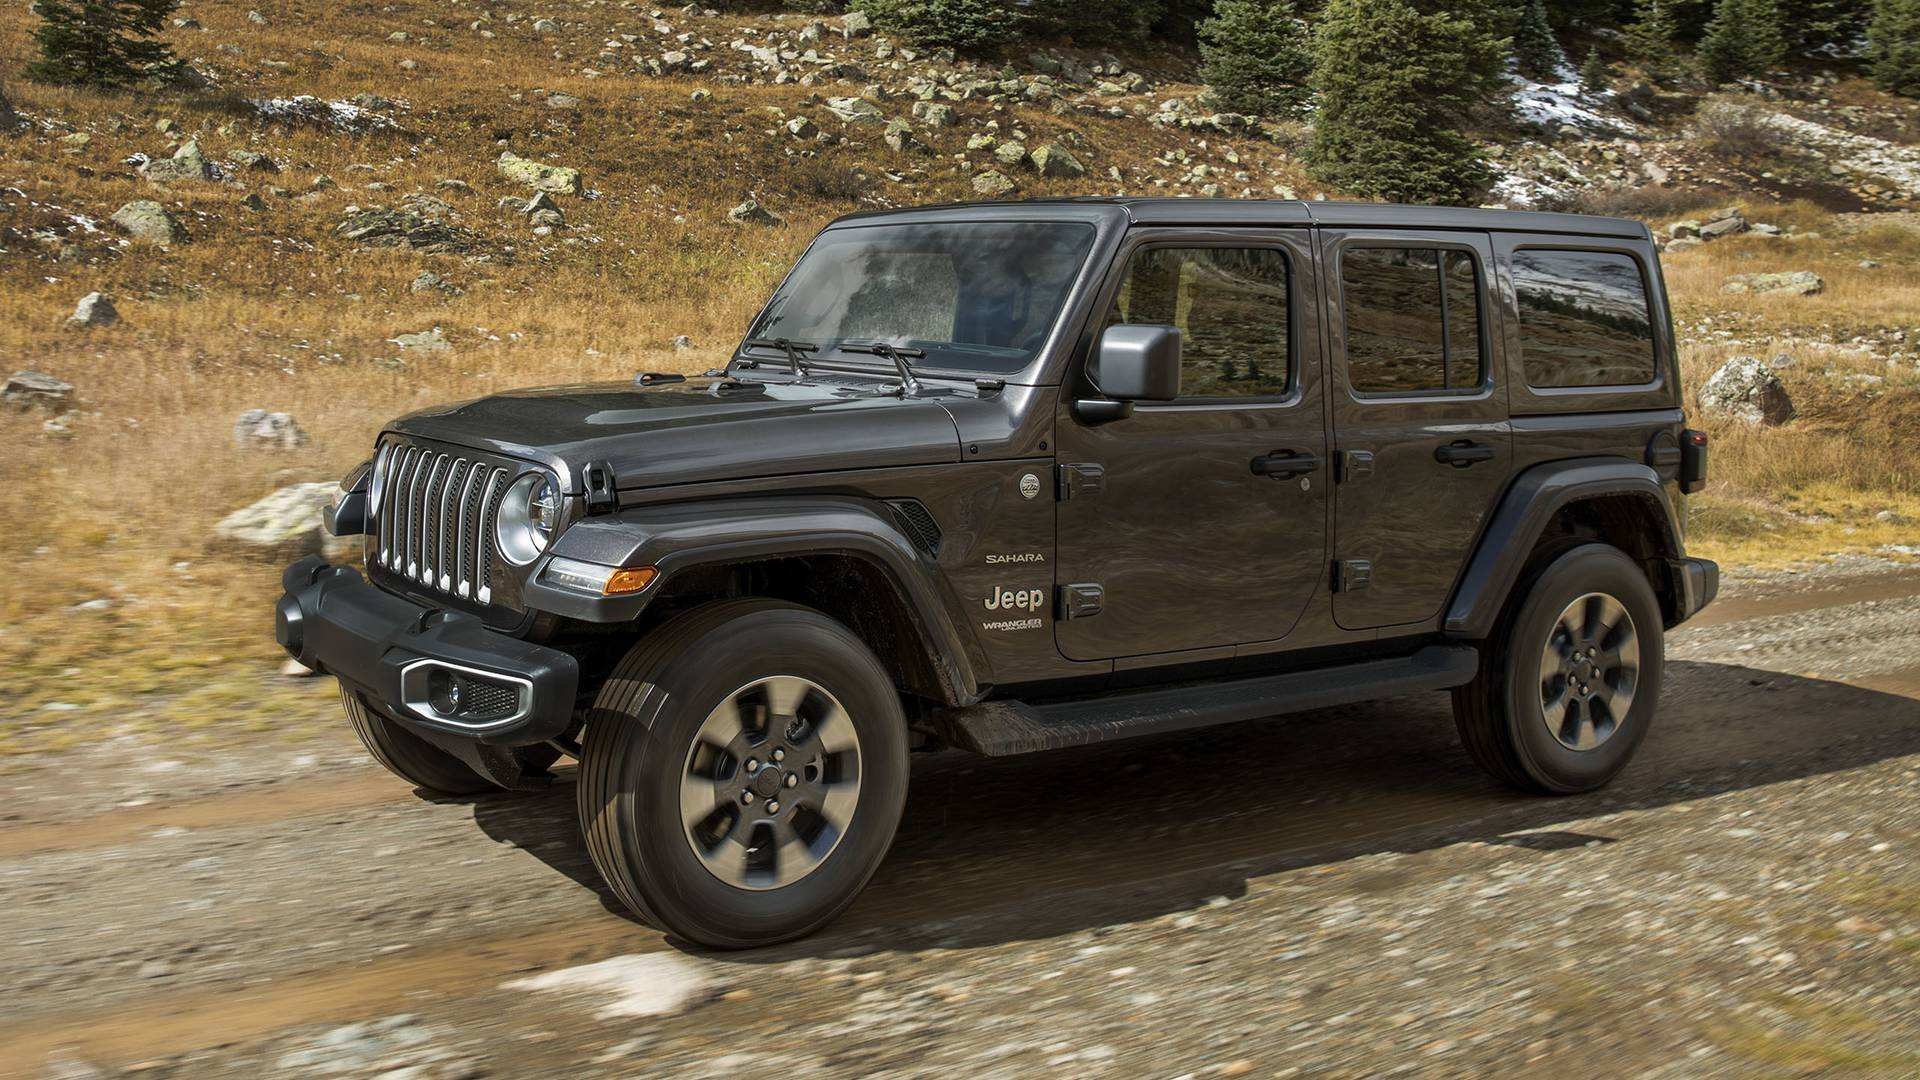 39 All New When Will 2020 Jeep Wrangler Be Available Speed Test by When Will 2020 Jeep Wrangler Be Available